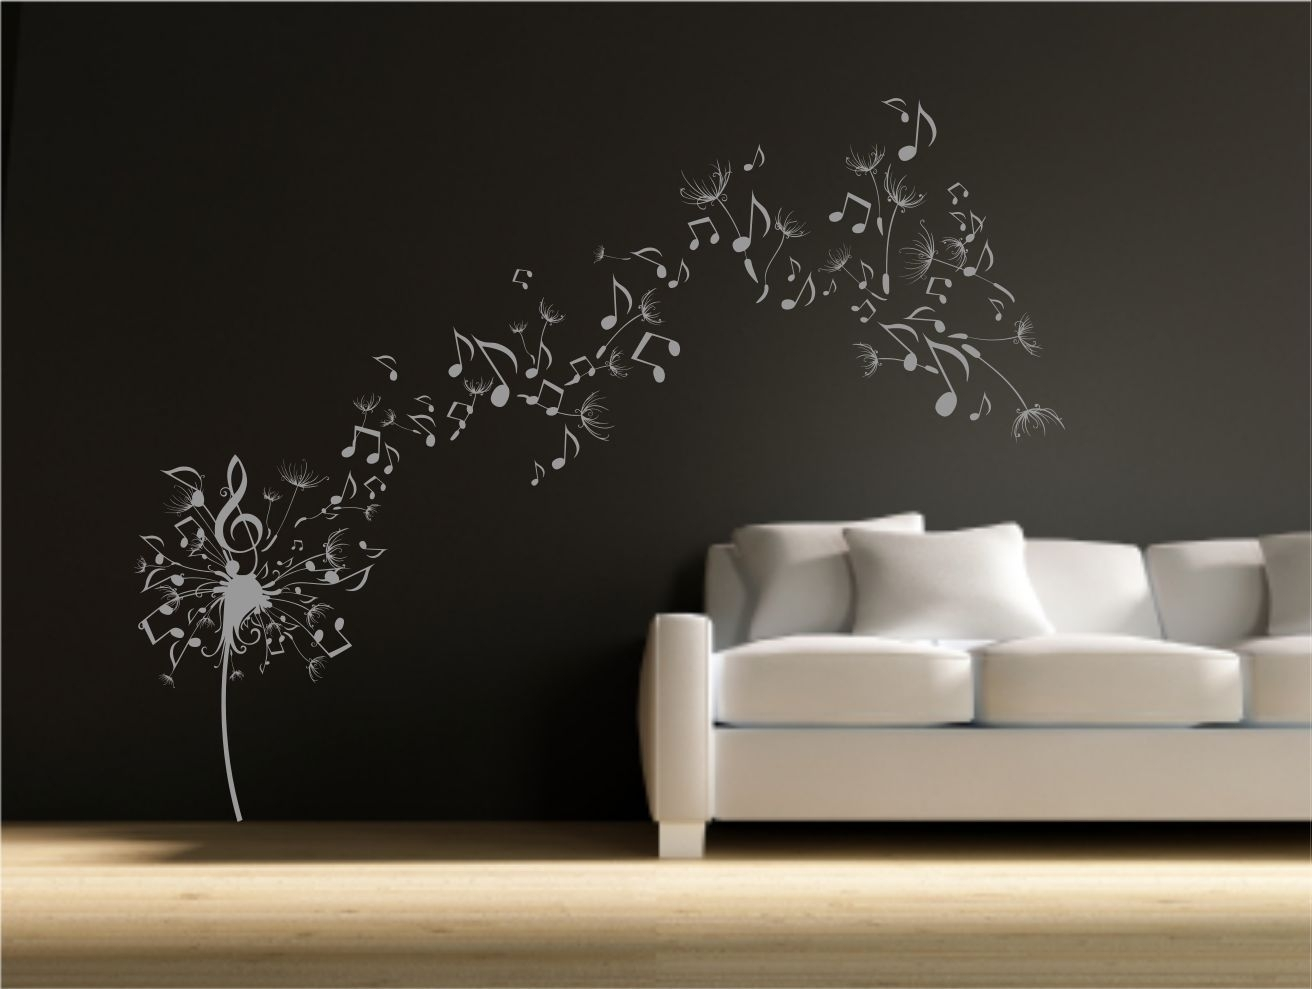 Dandelion Clock Seeds Music Note Wall Decal Sticker Transfer Stencil within Dandelion Wall Art (Image 3 of 20)